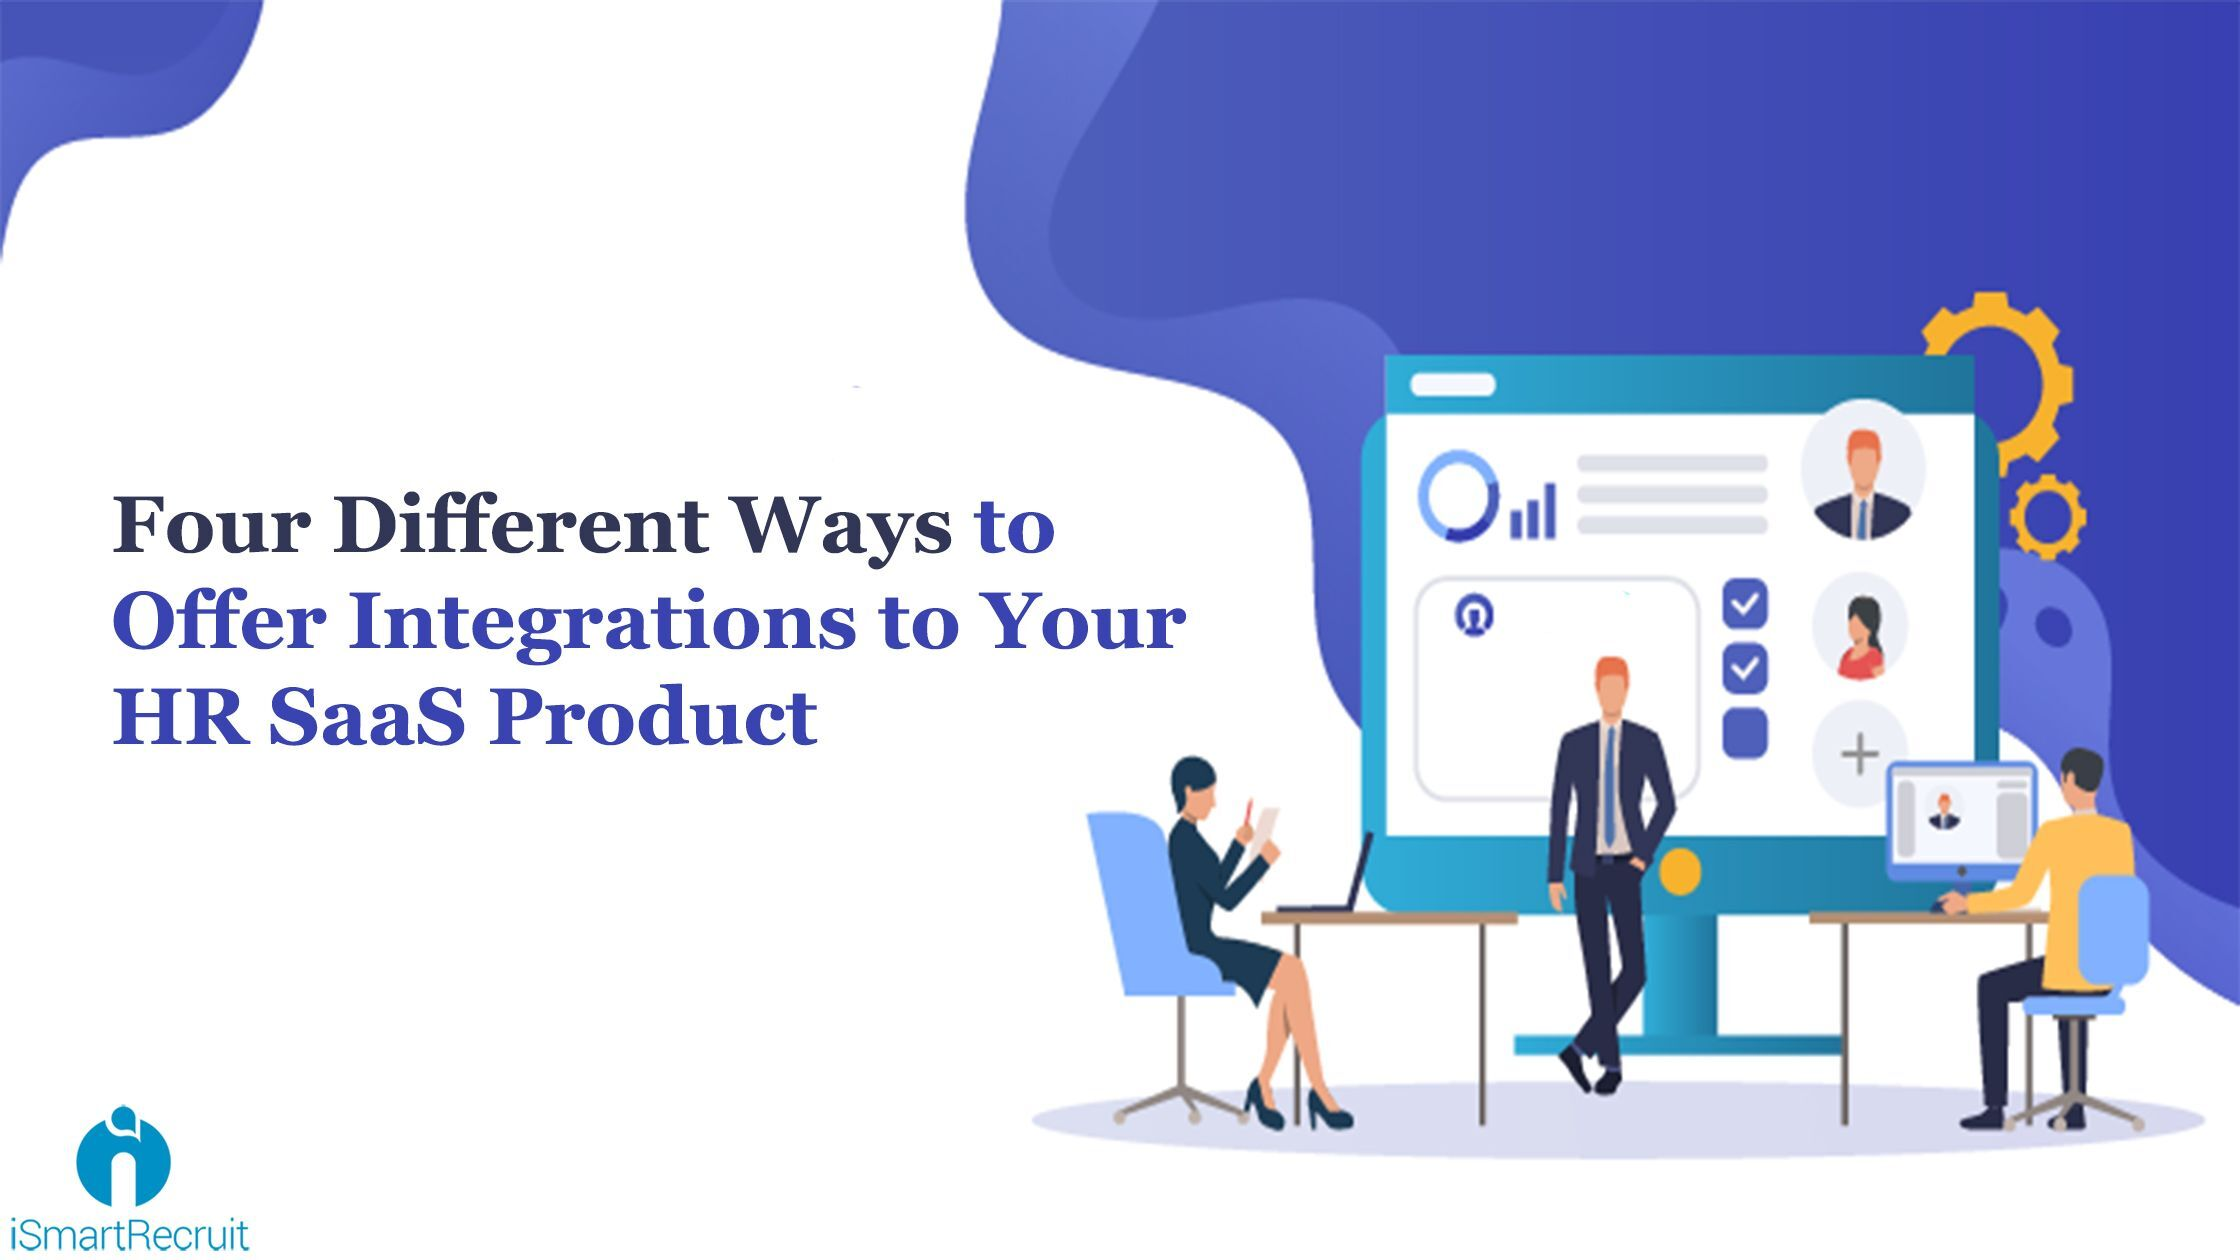 Four Different Ways to Offer Integrations to Your HR SaaS Product